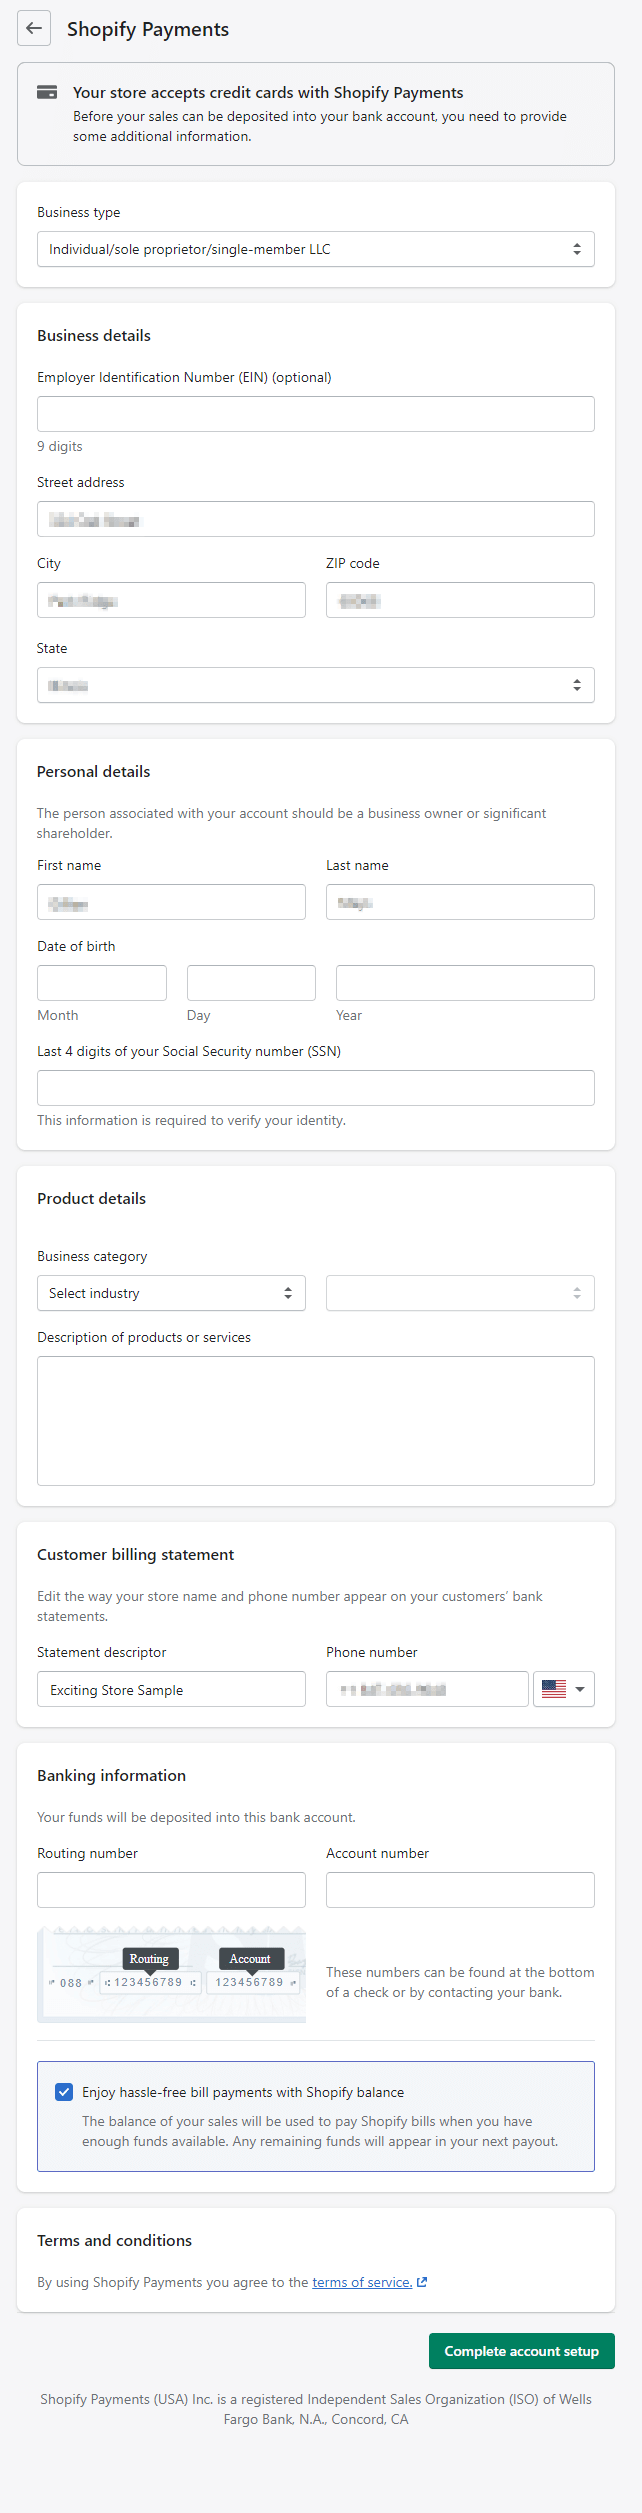 An image of Shopify's payment setup screen.